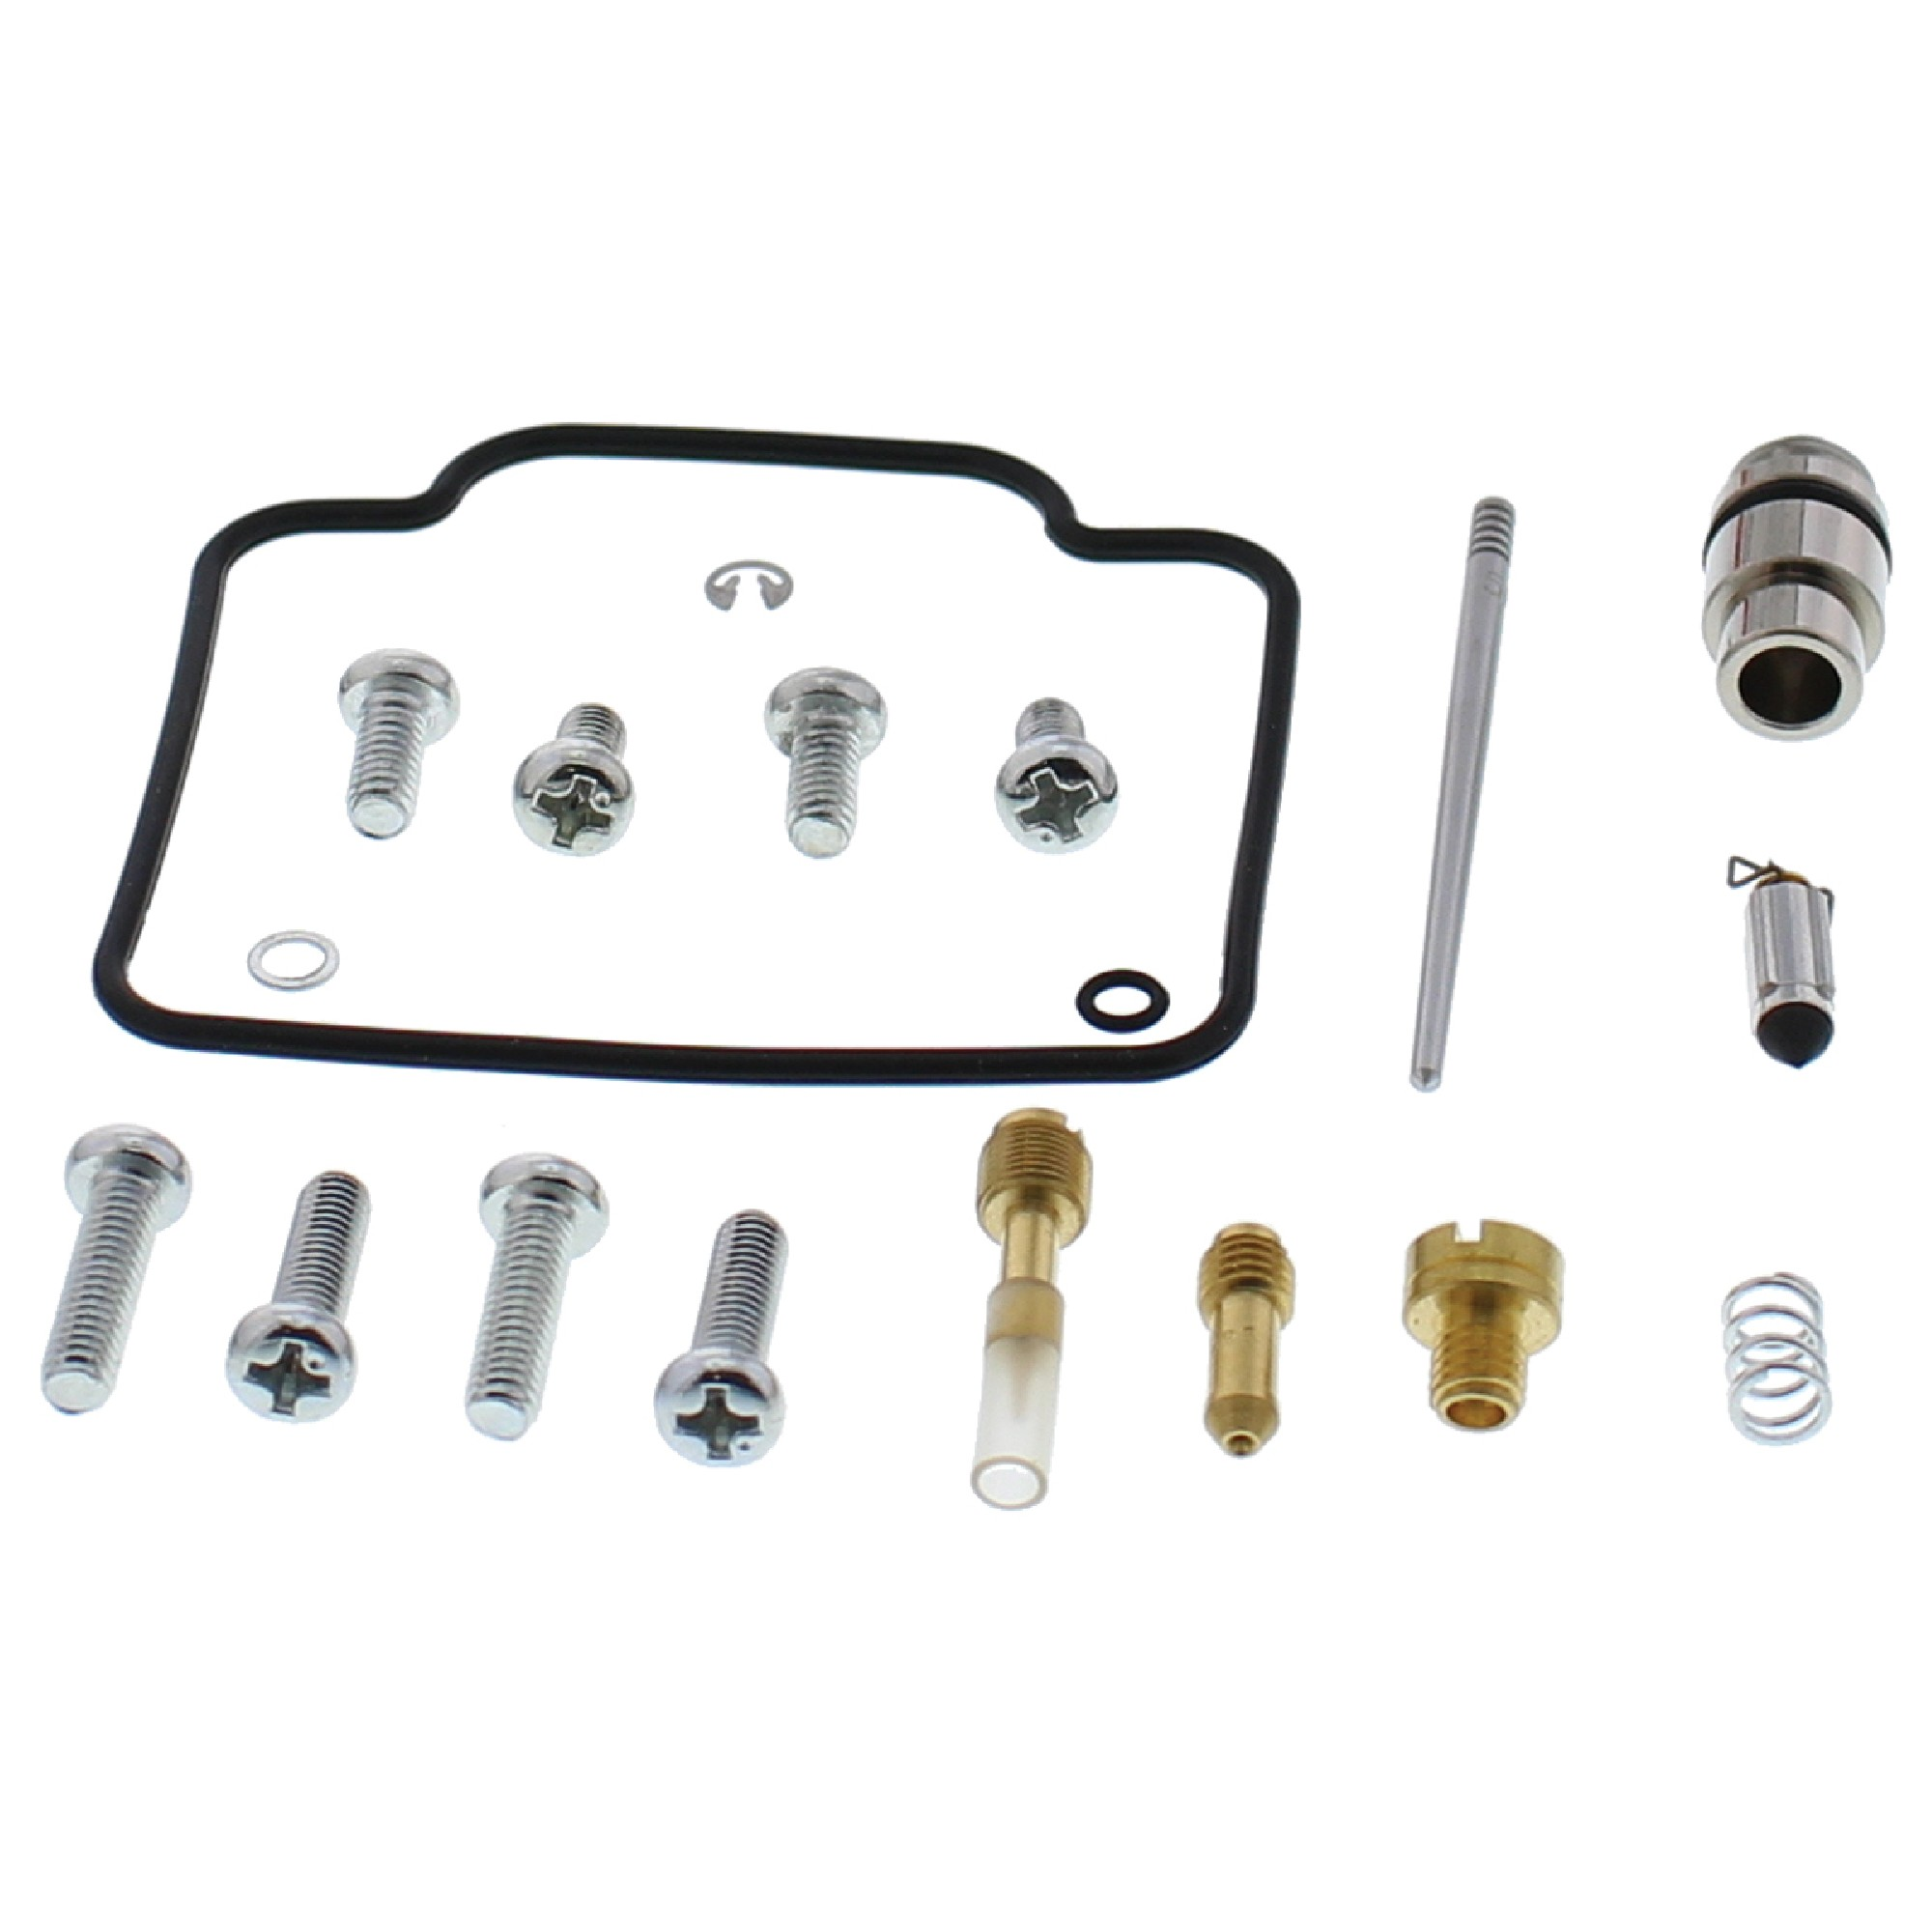 New All Balls Carburetor Kit, Complete 26-1567 for Polaris